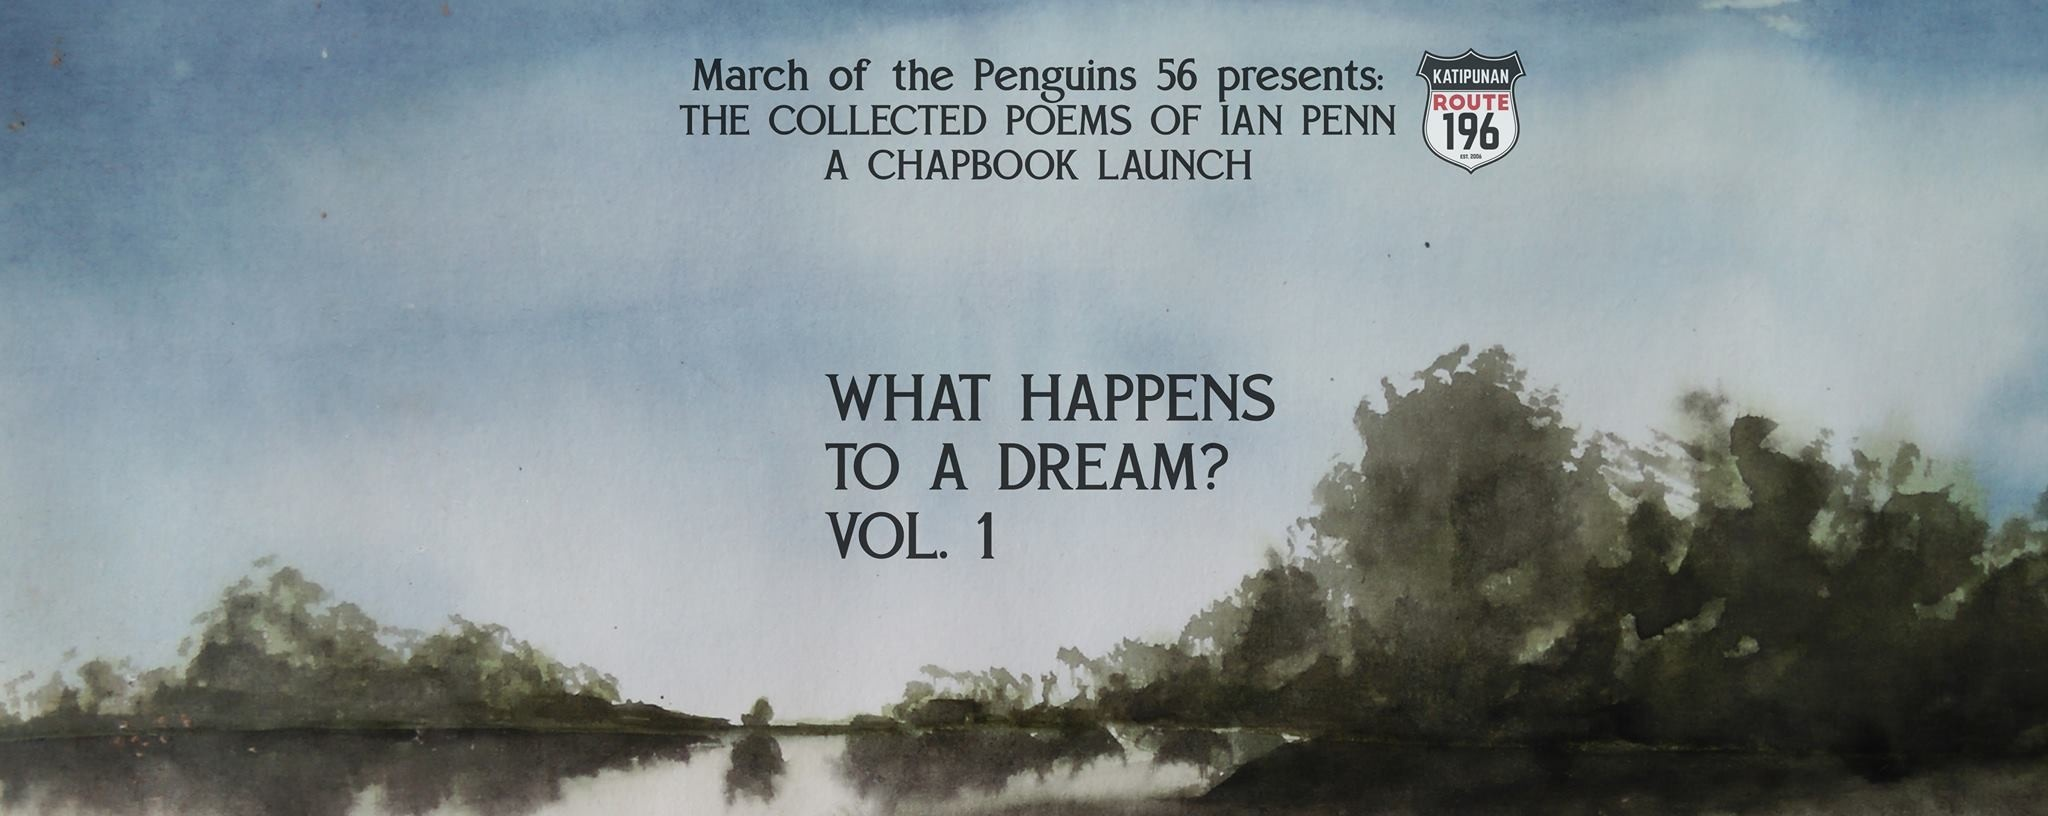 What Happens To A Dream? Vol. One / A Chapbook Launch